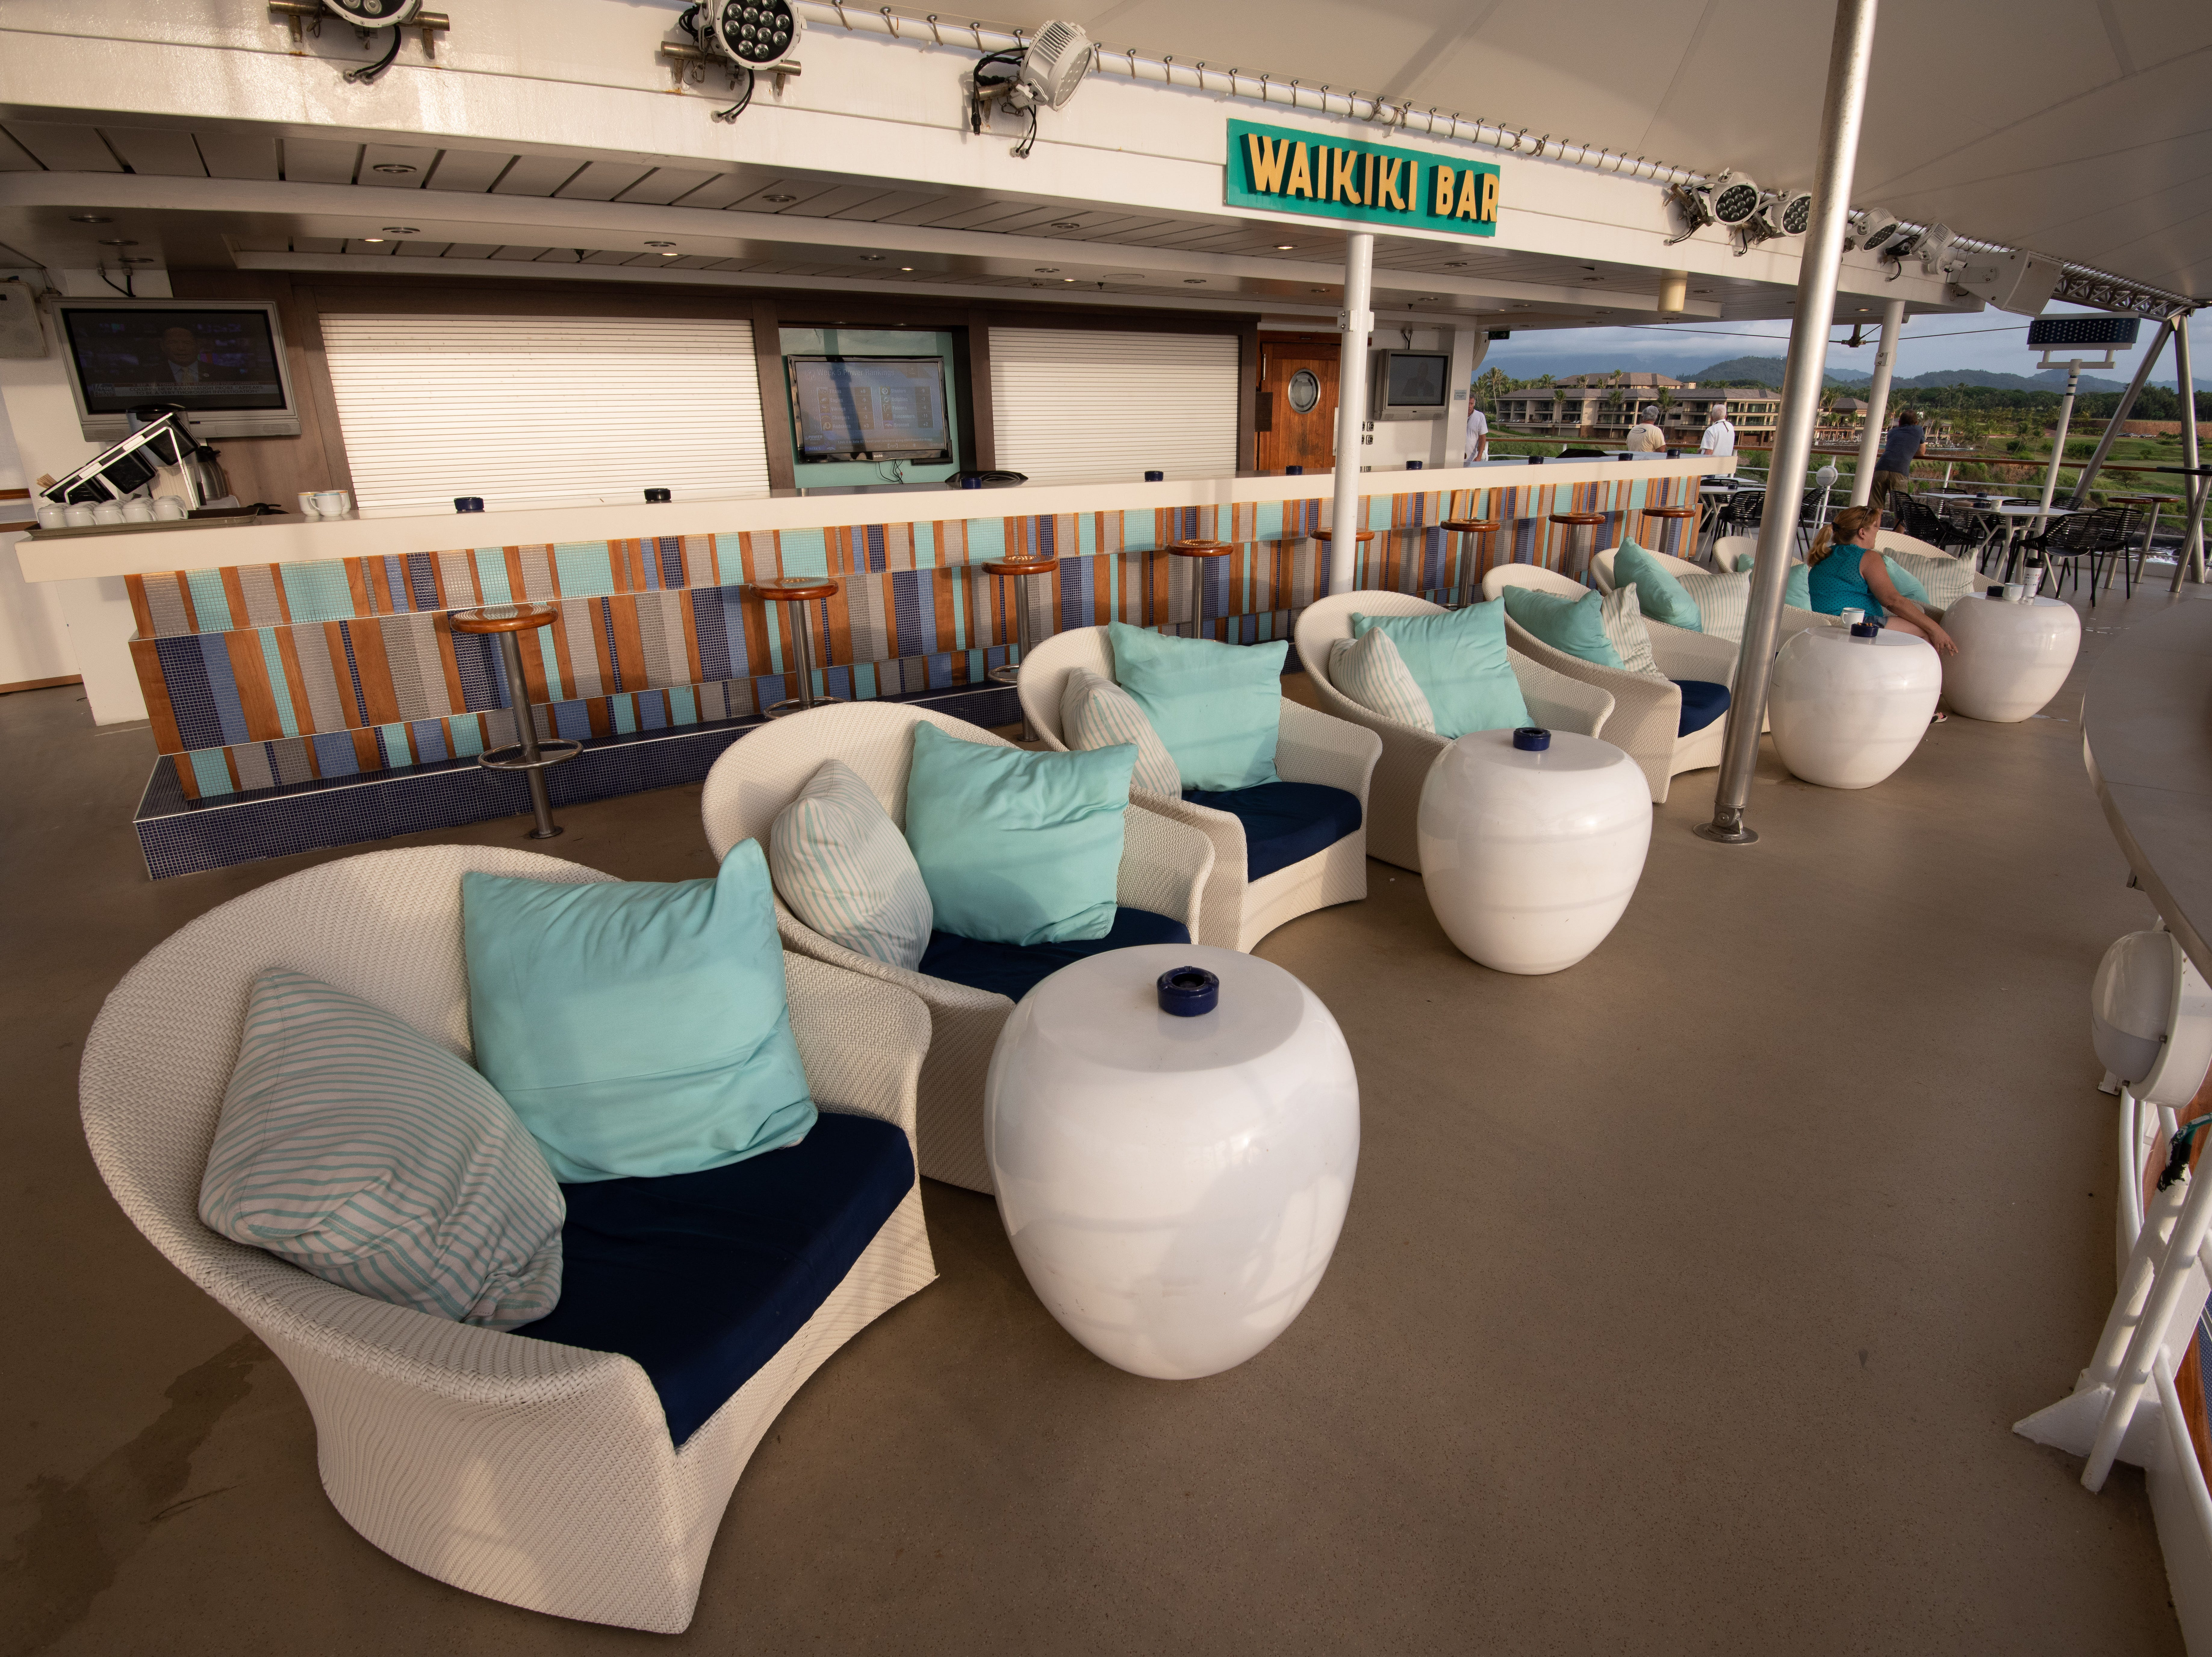 Located on Deck 13 overlooking the Oasis Pool, the surfer-themed, 97-seat Waikiki Bar is one of the few places on Pride of America where passengers can smoke.